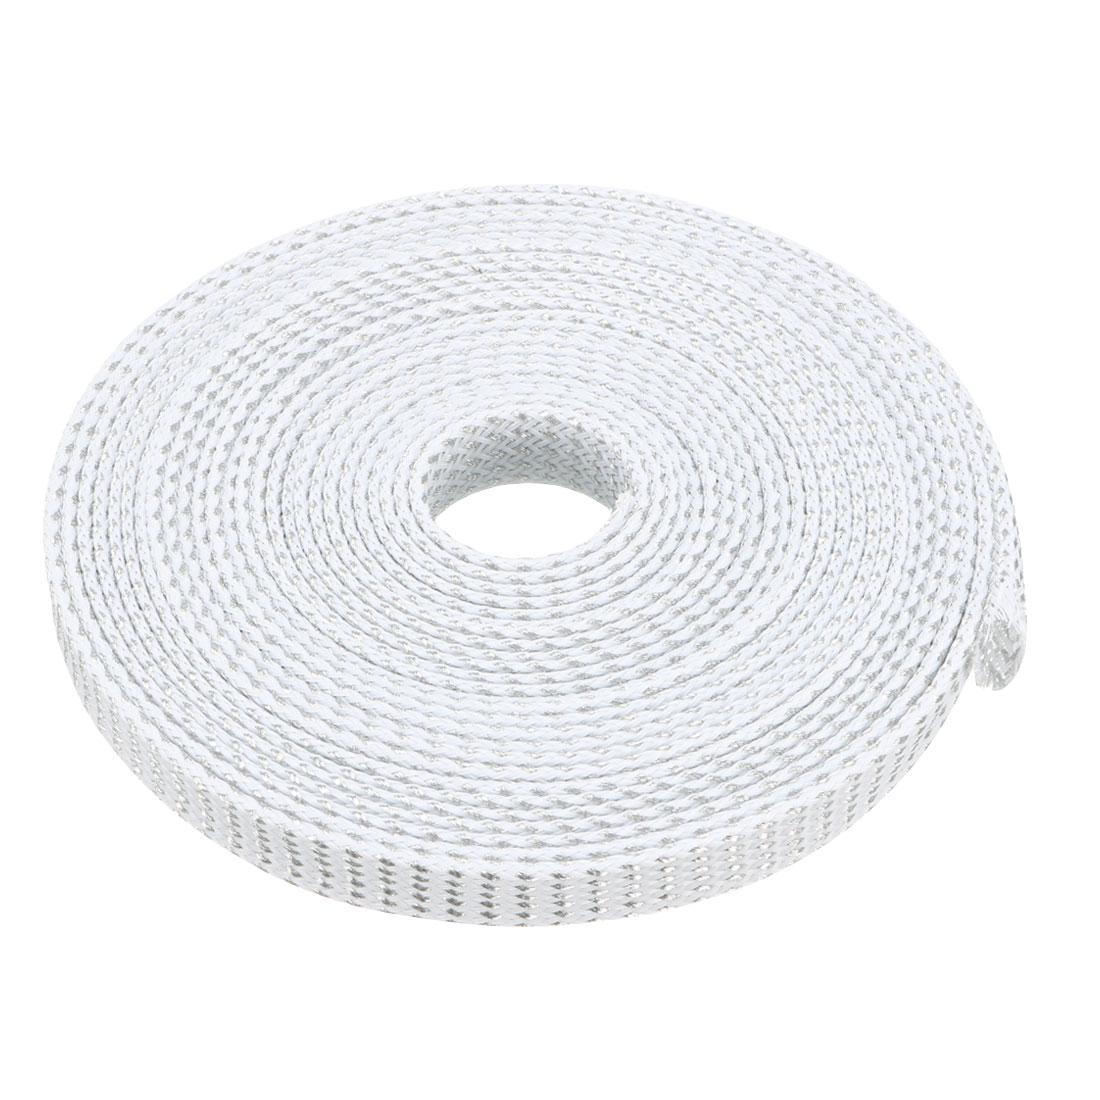 10mm Dia Tight Braided PET Expandable Sleeving Cable Wrap Sheath Silver White 16Ft